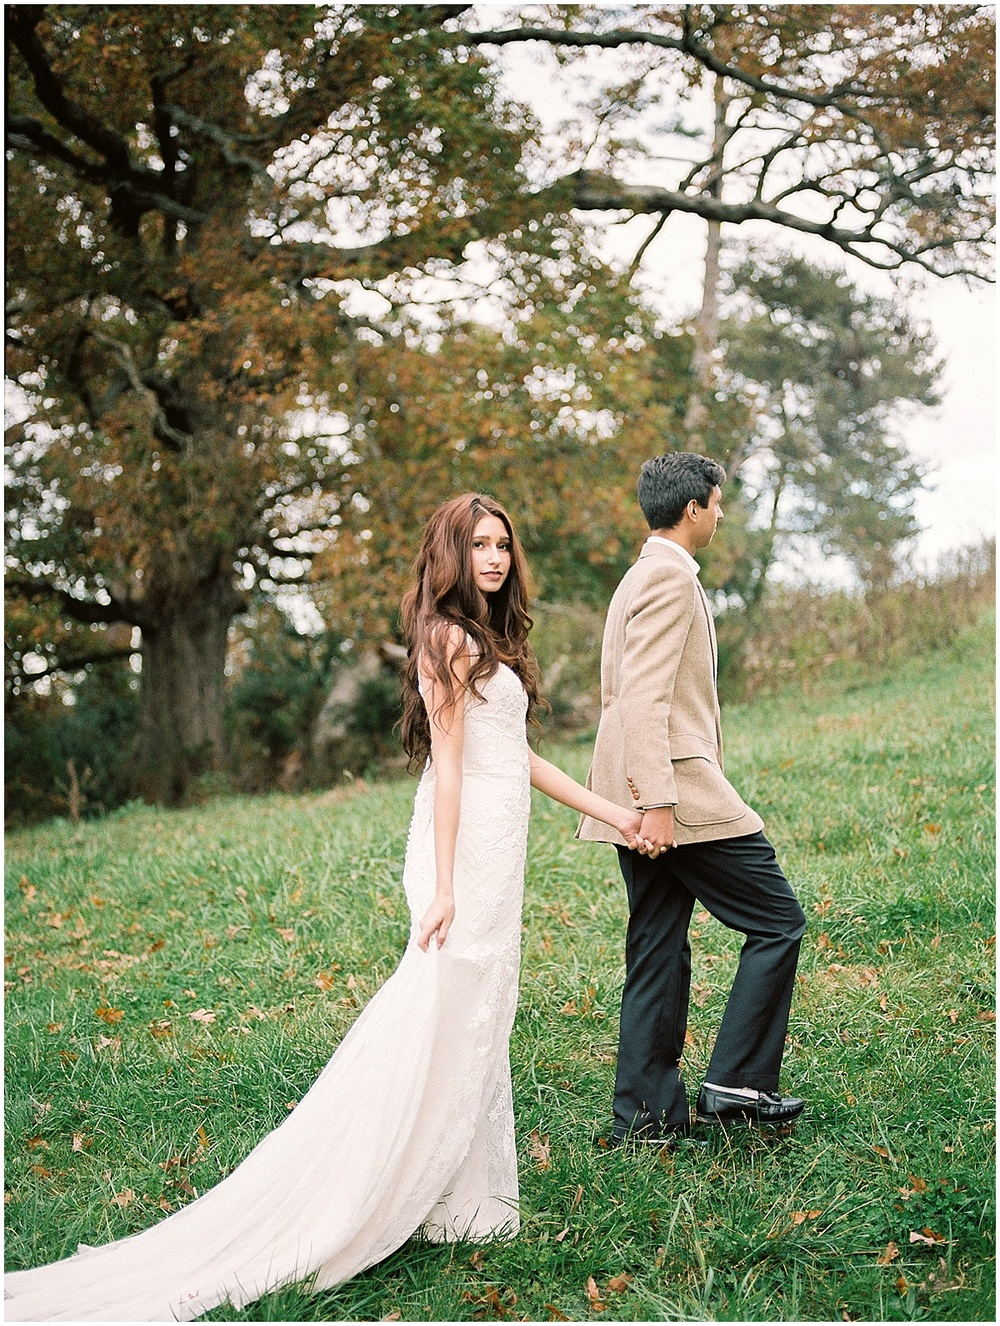 Abigail_Malone_Fall_Wedding_Knoxville_Film_Portra_400_Kodak_Mountain_Views_Abby_Elizabeth-57.jpg